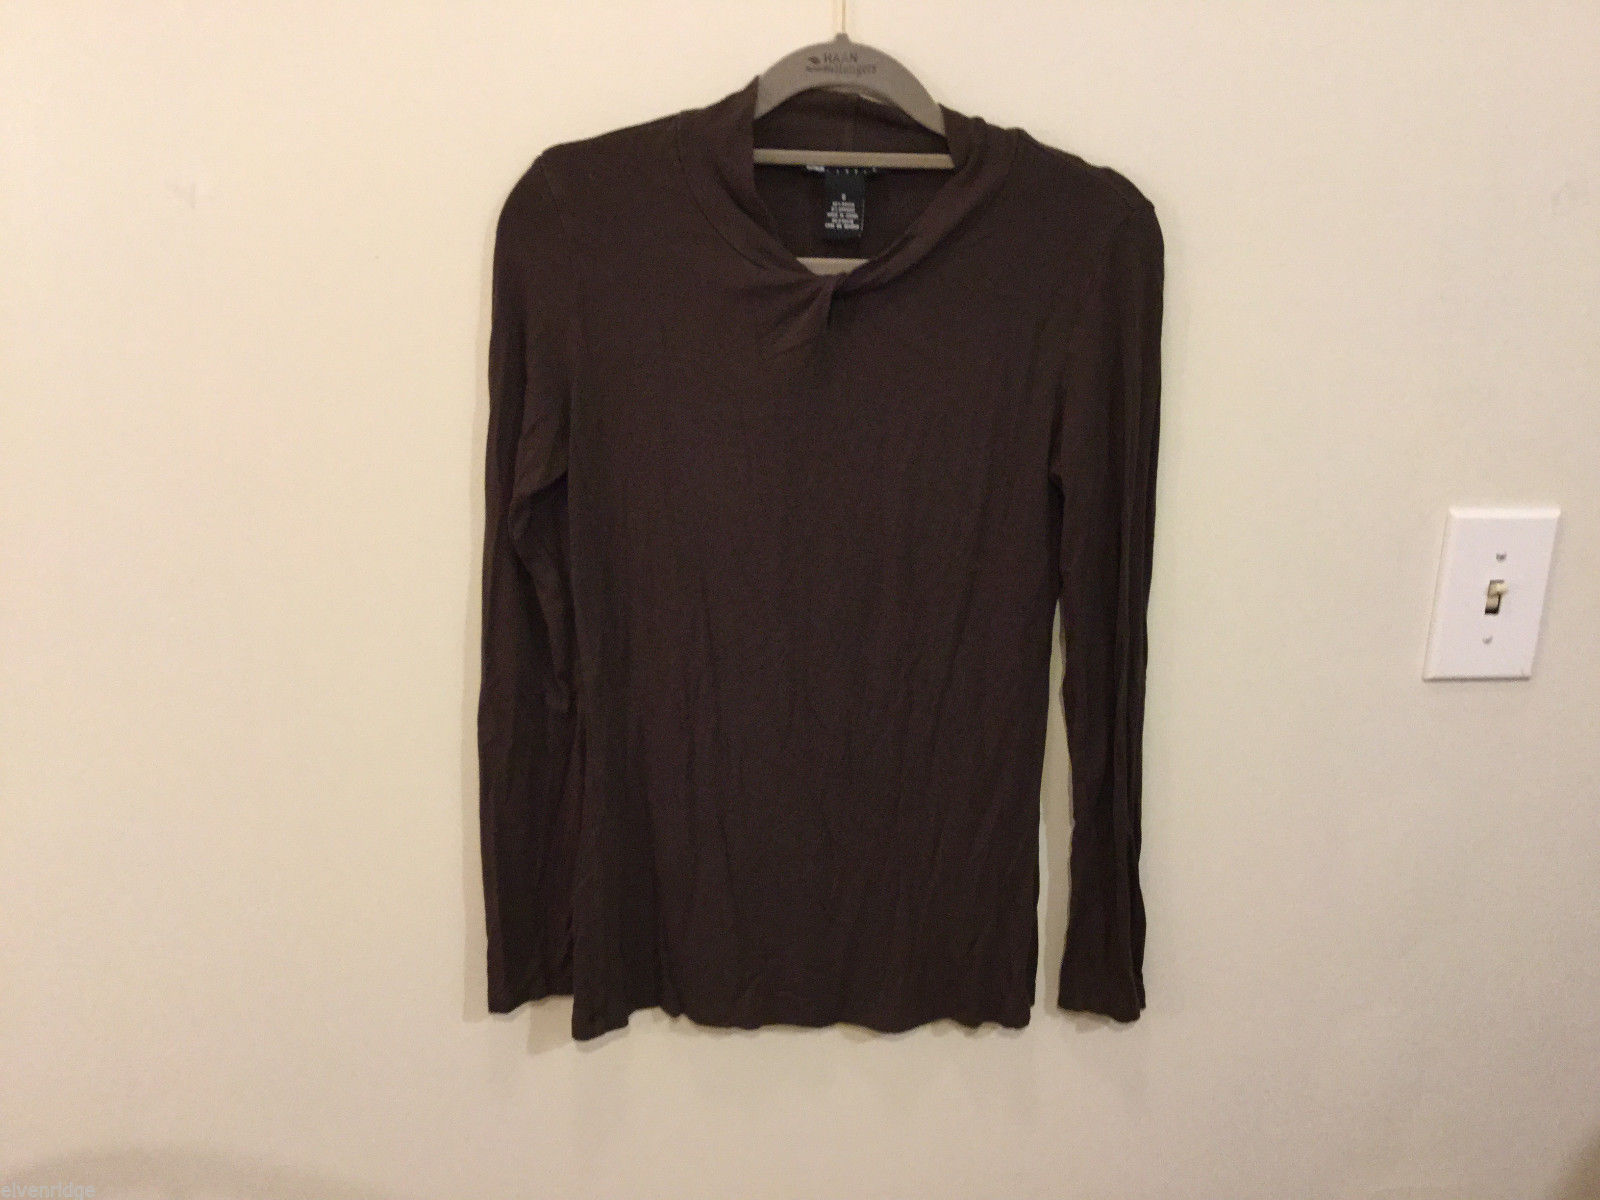 Carole Little Brown Mock with Knot Neck Stretchable Rayon Blouse Top, Size S